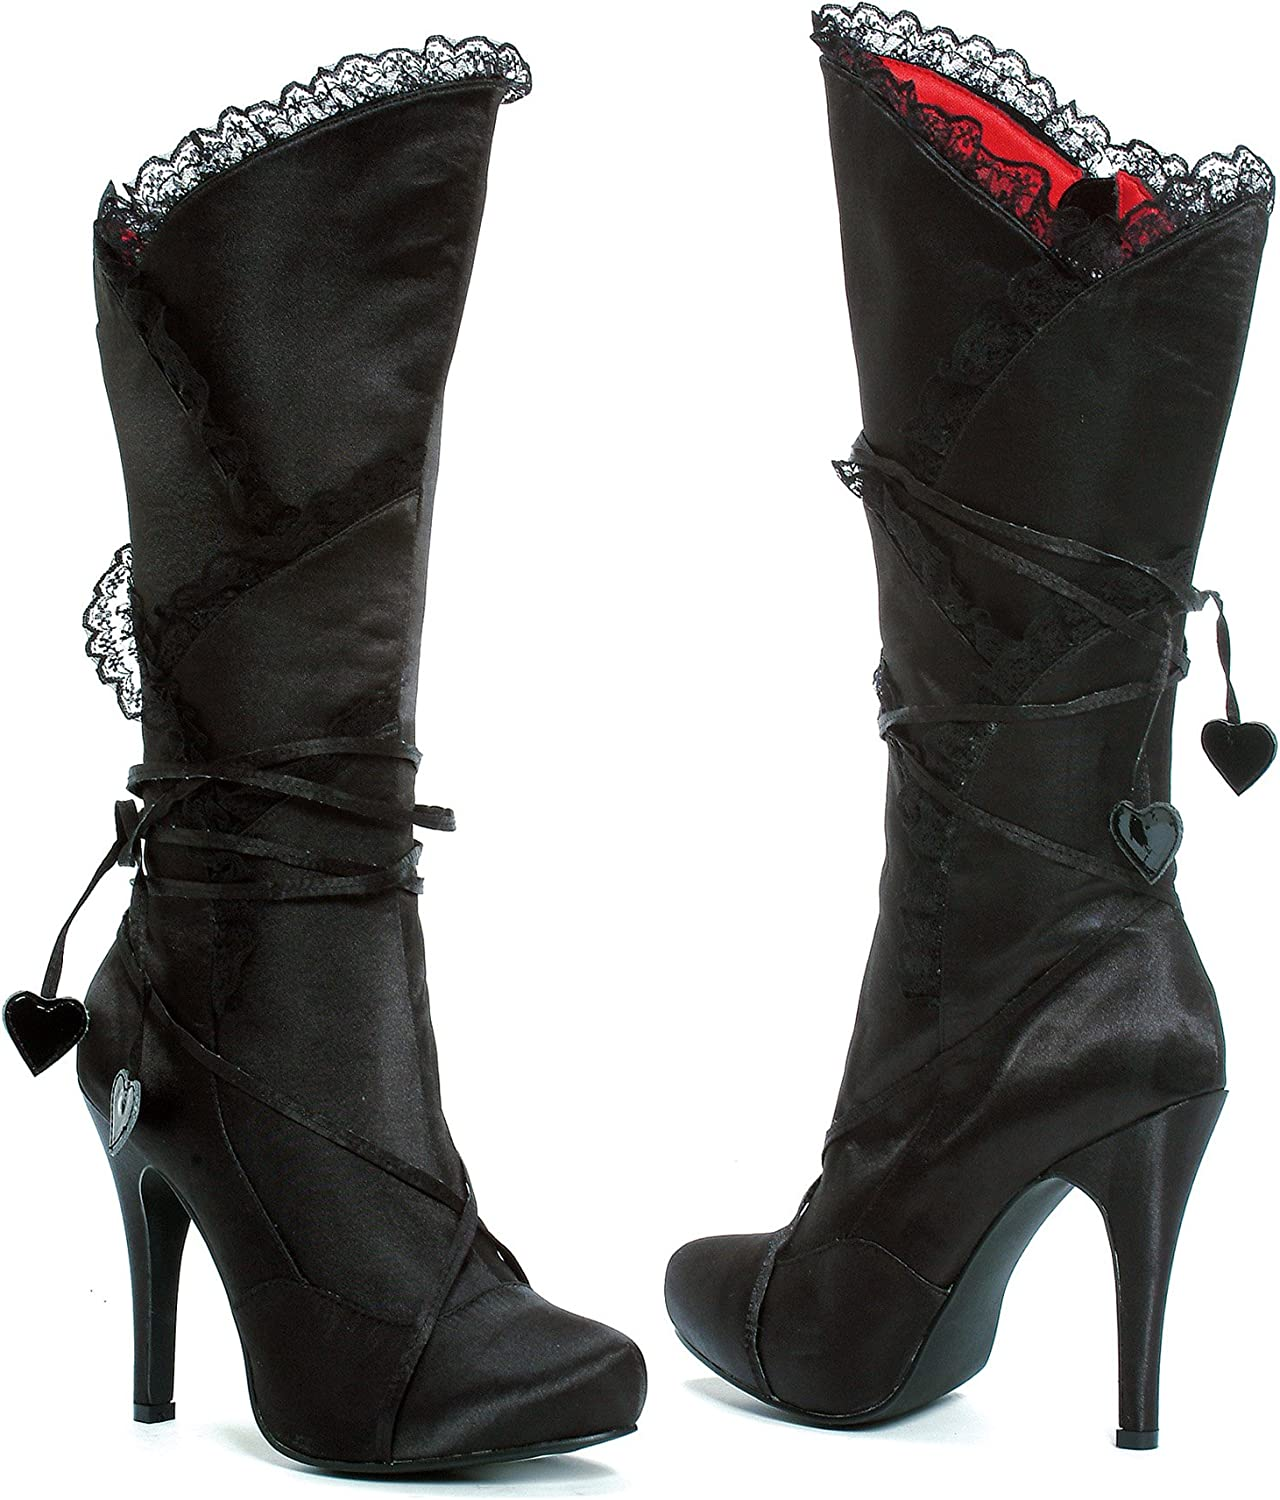 Ellie 400-GOTHIKA 4  Satin Knee High Boot Women